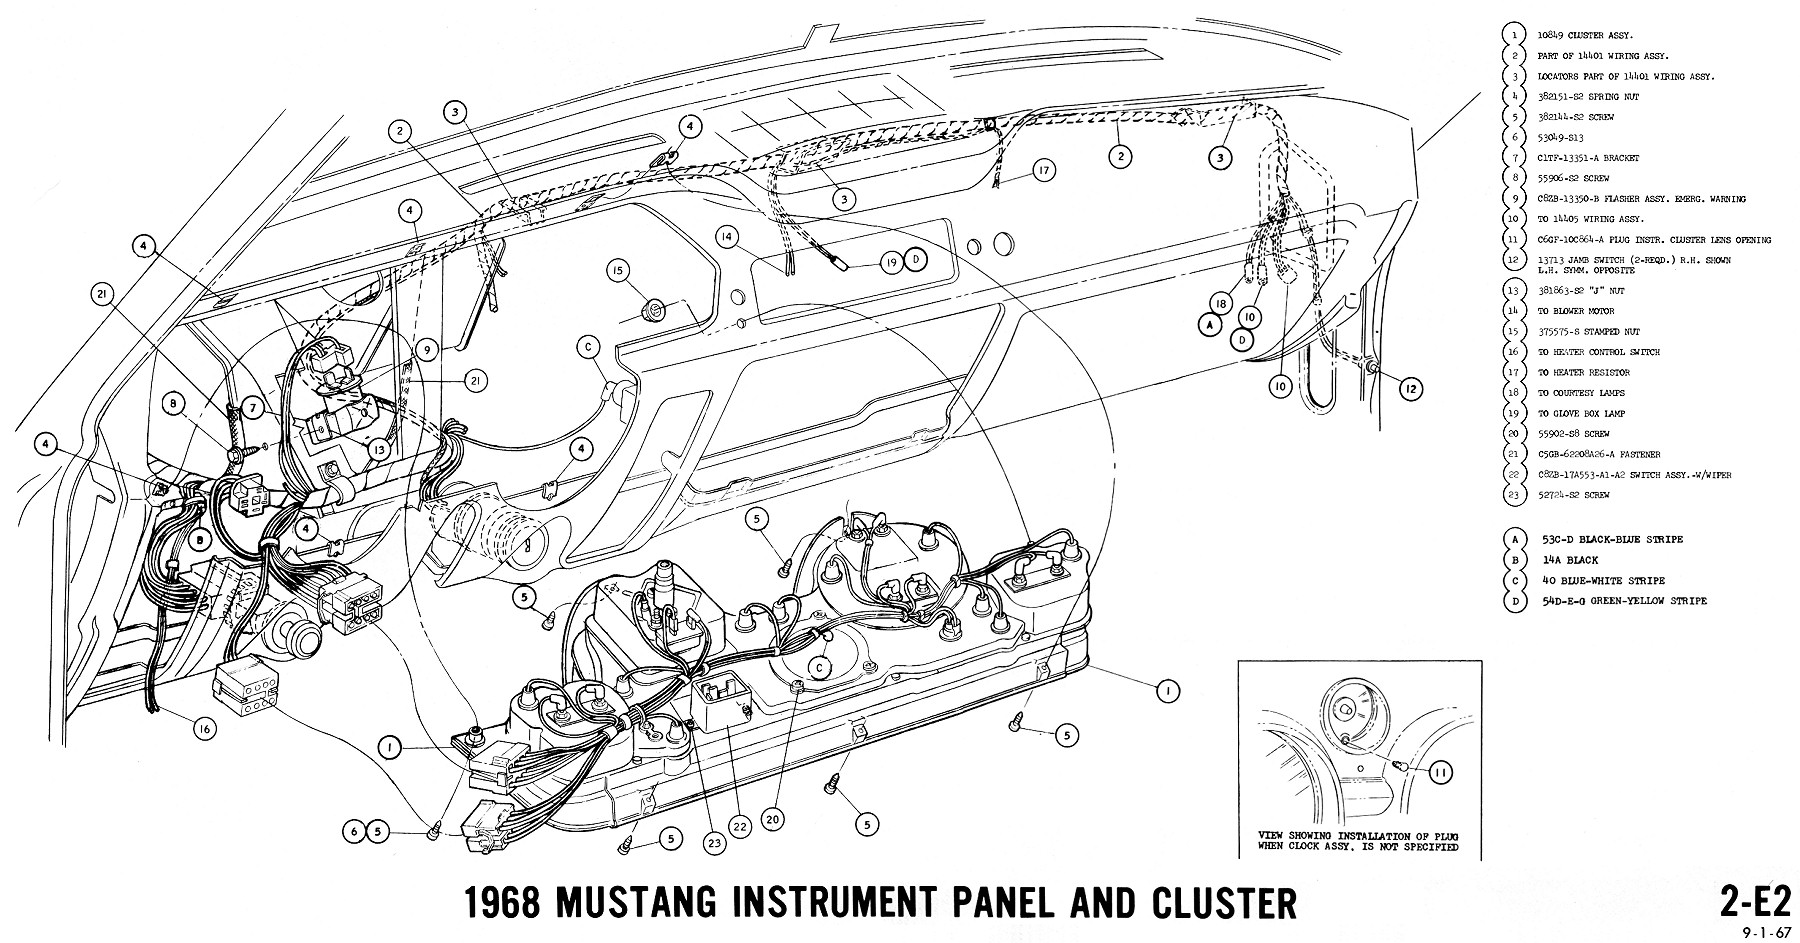 1967 Mustang Dash Wiring Harness Diagram Get Free Image About Wiring on 1970 mustang dash lights, 1970 mustang parts, 1970 mustang oil filter, 1970 mustang mach 2, 1970 mustang colors, 1970 mustang rear window trim, 1970 mustang hatchback, 1970 mustang ignition switch, ford mustang vacuum diagram, 1970 mustang sportsroof, 1970 mustang fuel pump, 1970 mustang notchback, 1969 mustang ignition switch diagram, 66 mustang electrical diagram, 1970 mustang wire harness, 2003 mustang fuse diagram, 1970 mustang black, 1970 mustang drive shaft, 70 ford mustang electrical diagram, 1970 mustang ford,